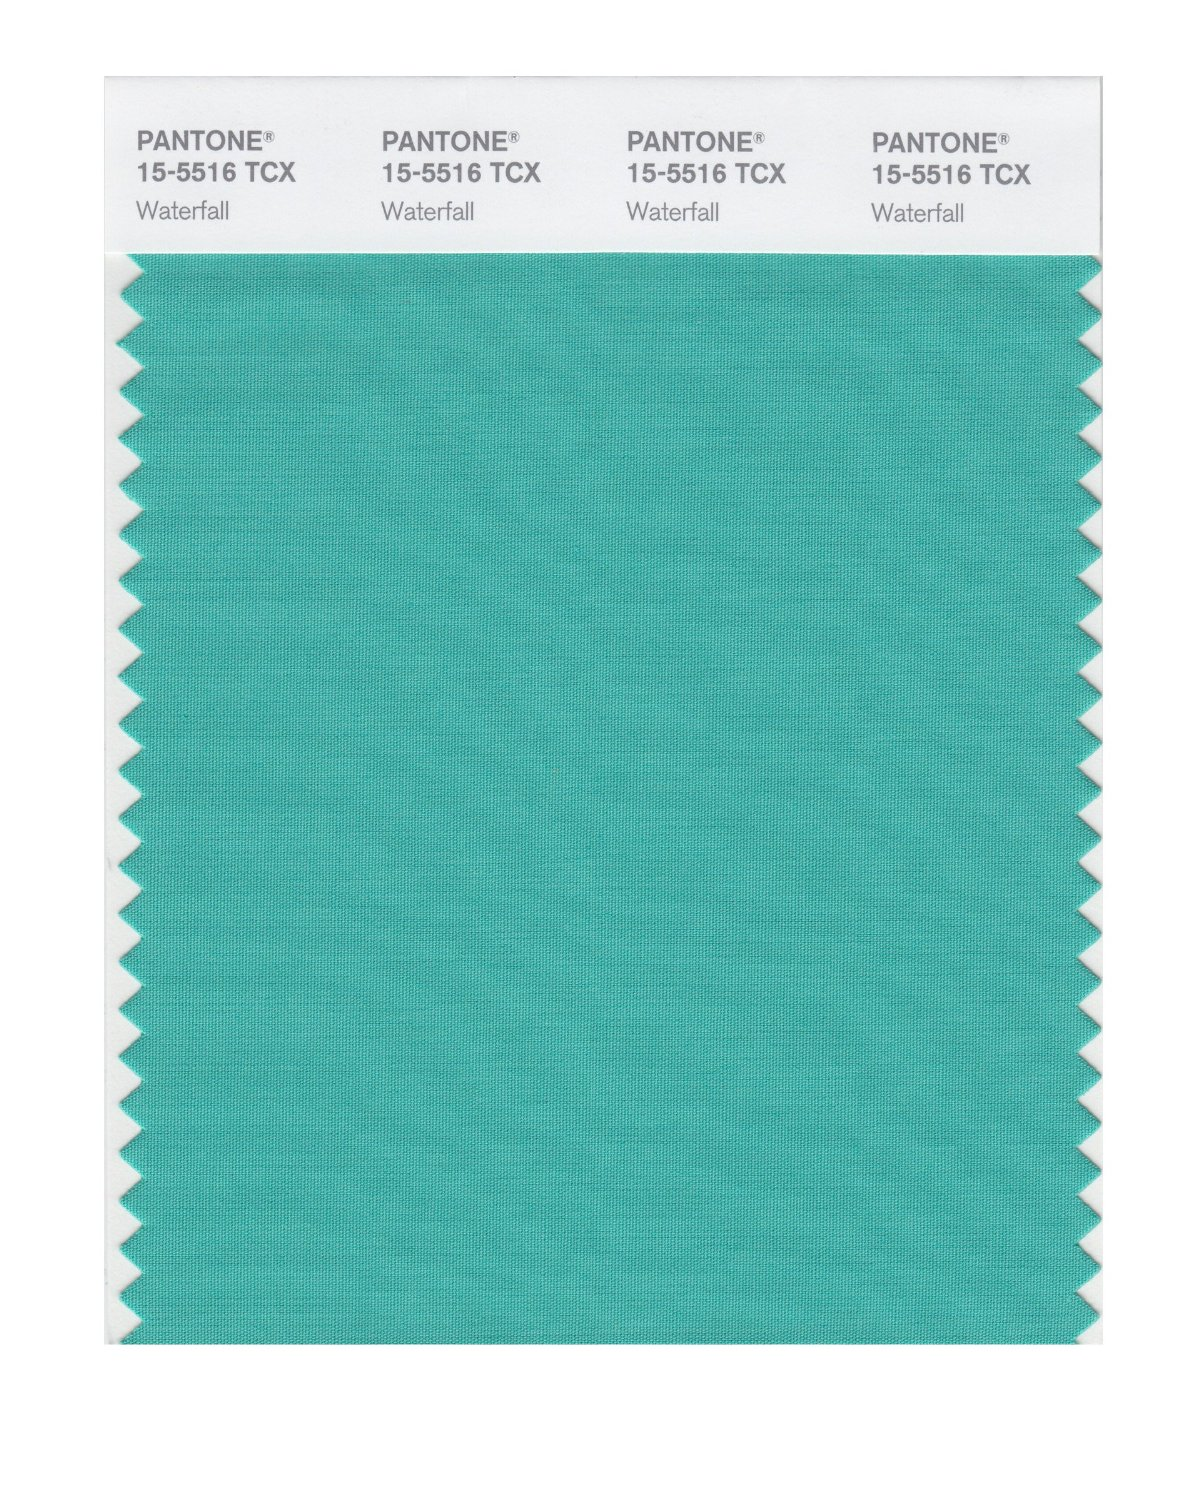 Pantone Smart Swatch 15-5516 Waterfall